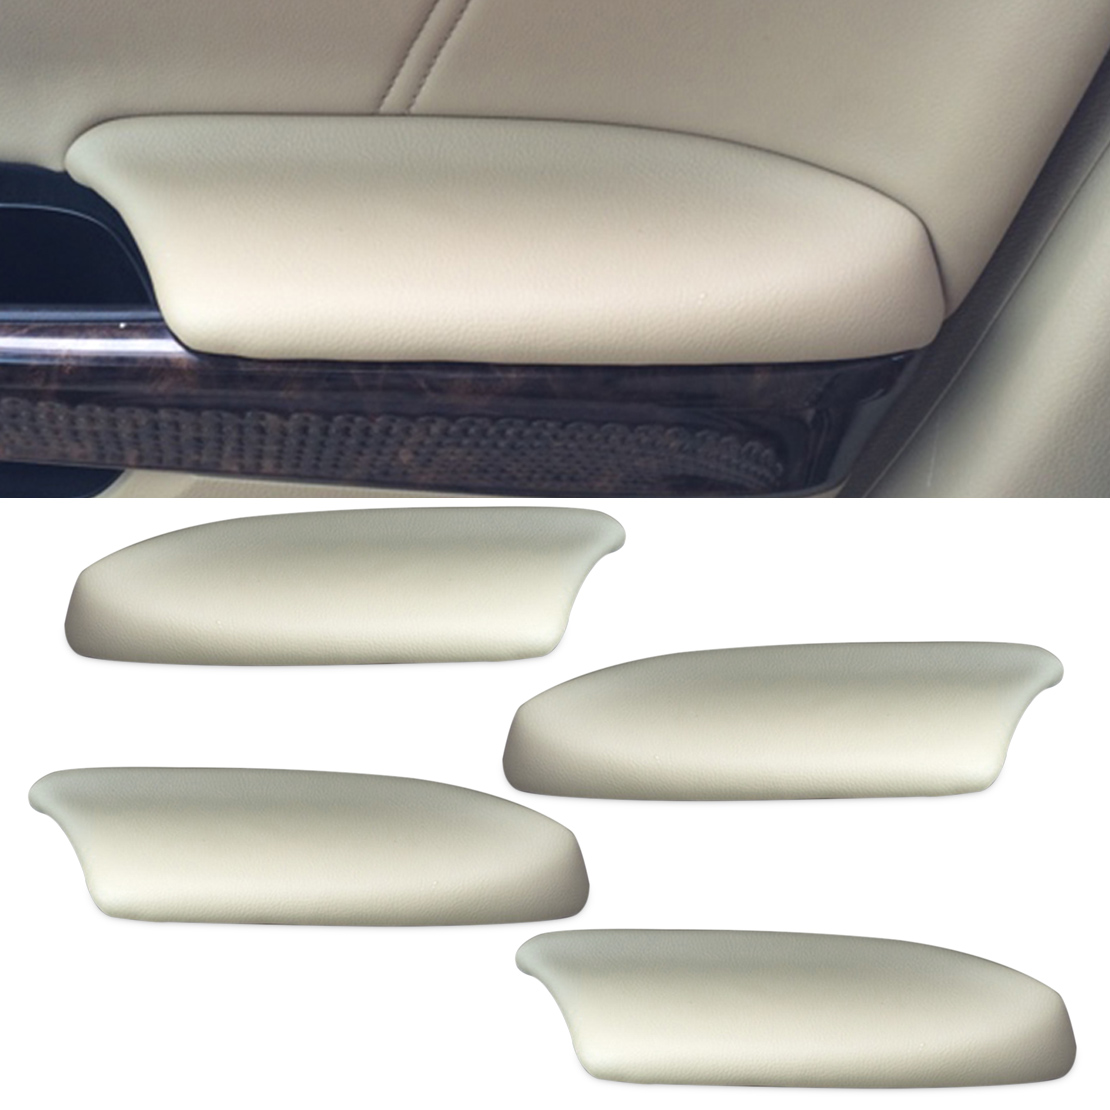 DWCX 4pcs Beige Leather Front & Rear Door Panels Armrest Skin Covers for Honda Accord 2008 2009 2010 2011 2012 only for Sedan